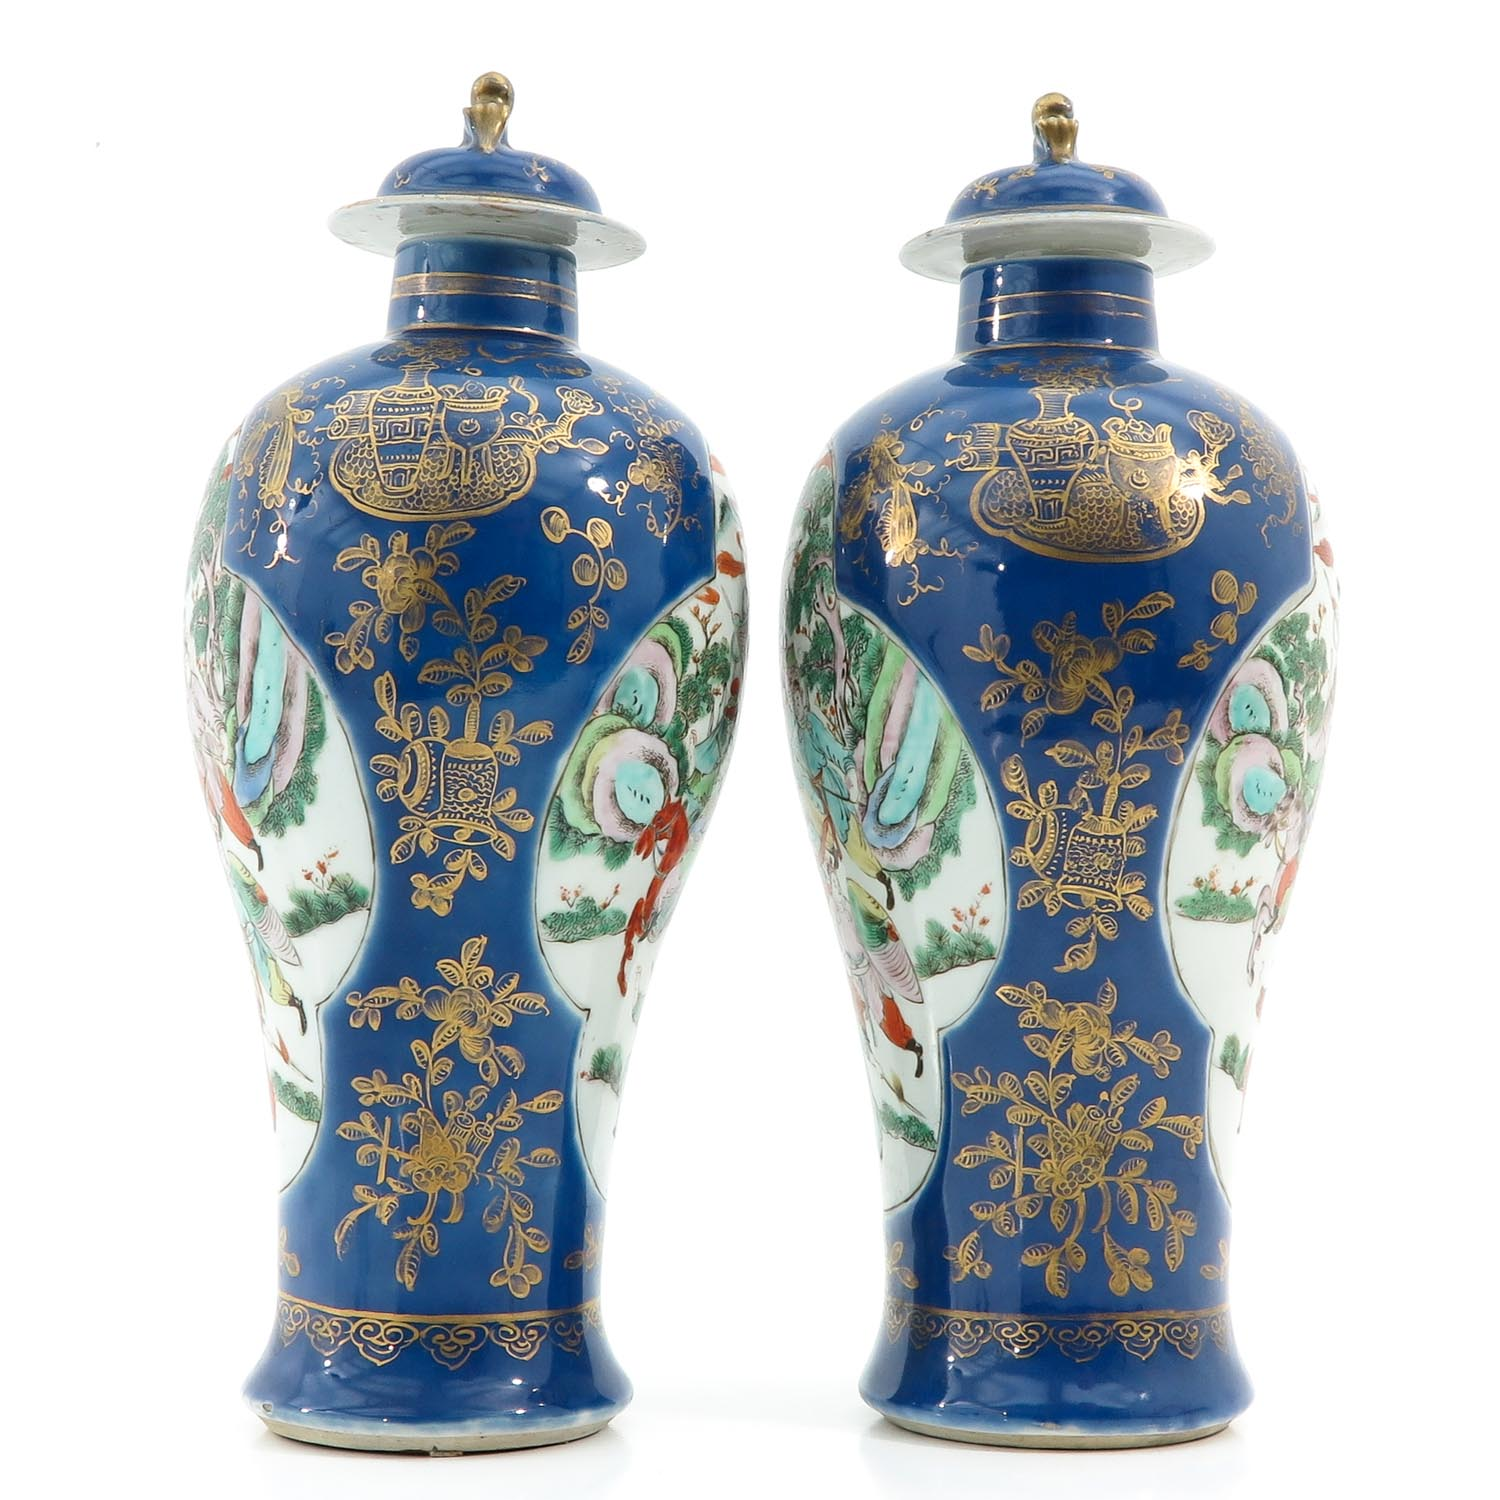 A Pair of Powder Blue Vases - Image 2 of 10